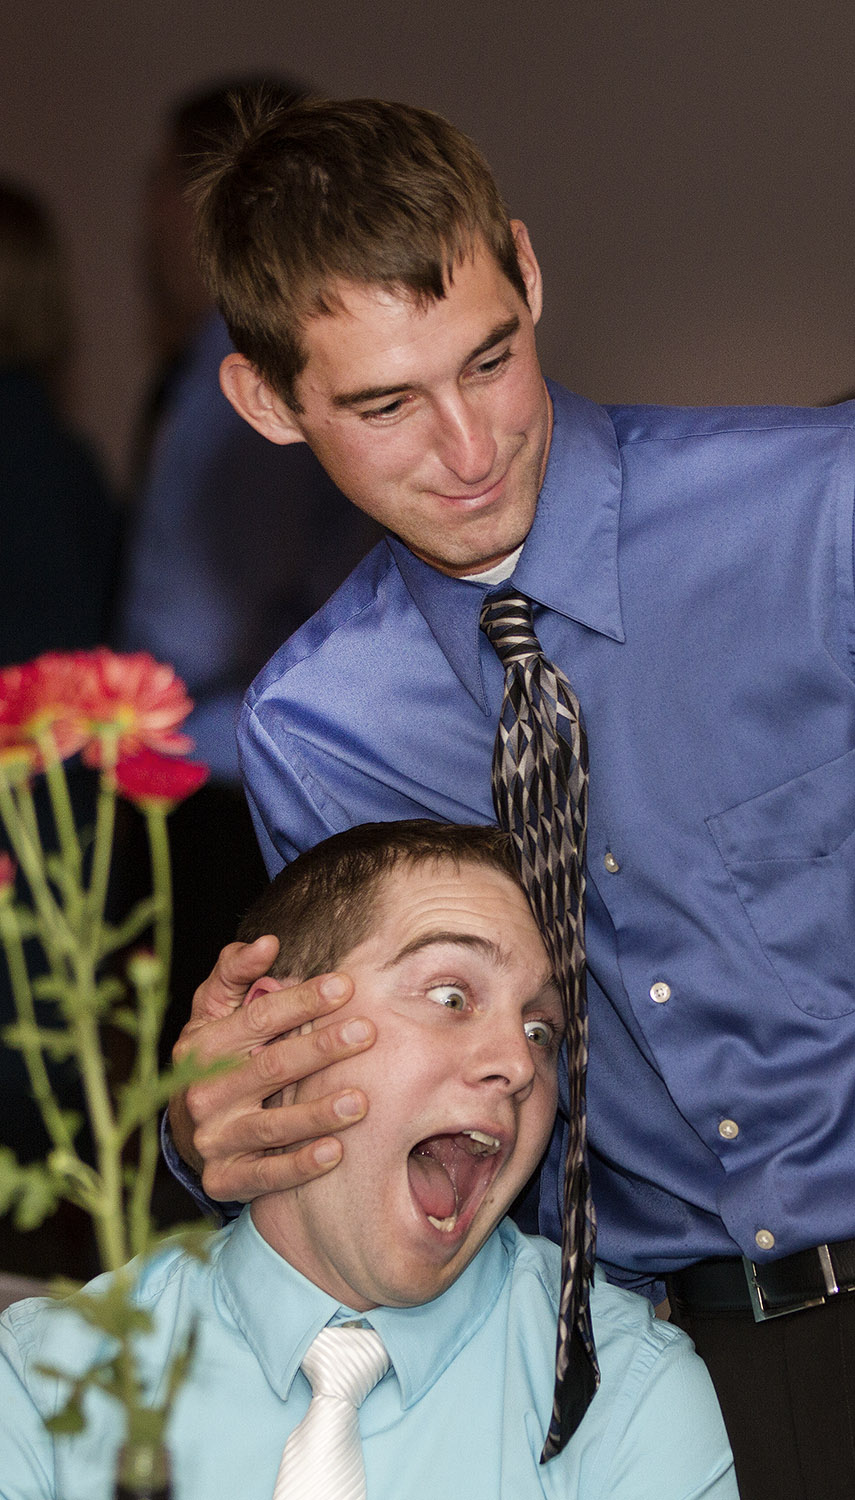 wedding_fun_0136.JPG